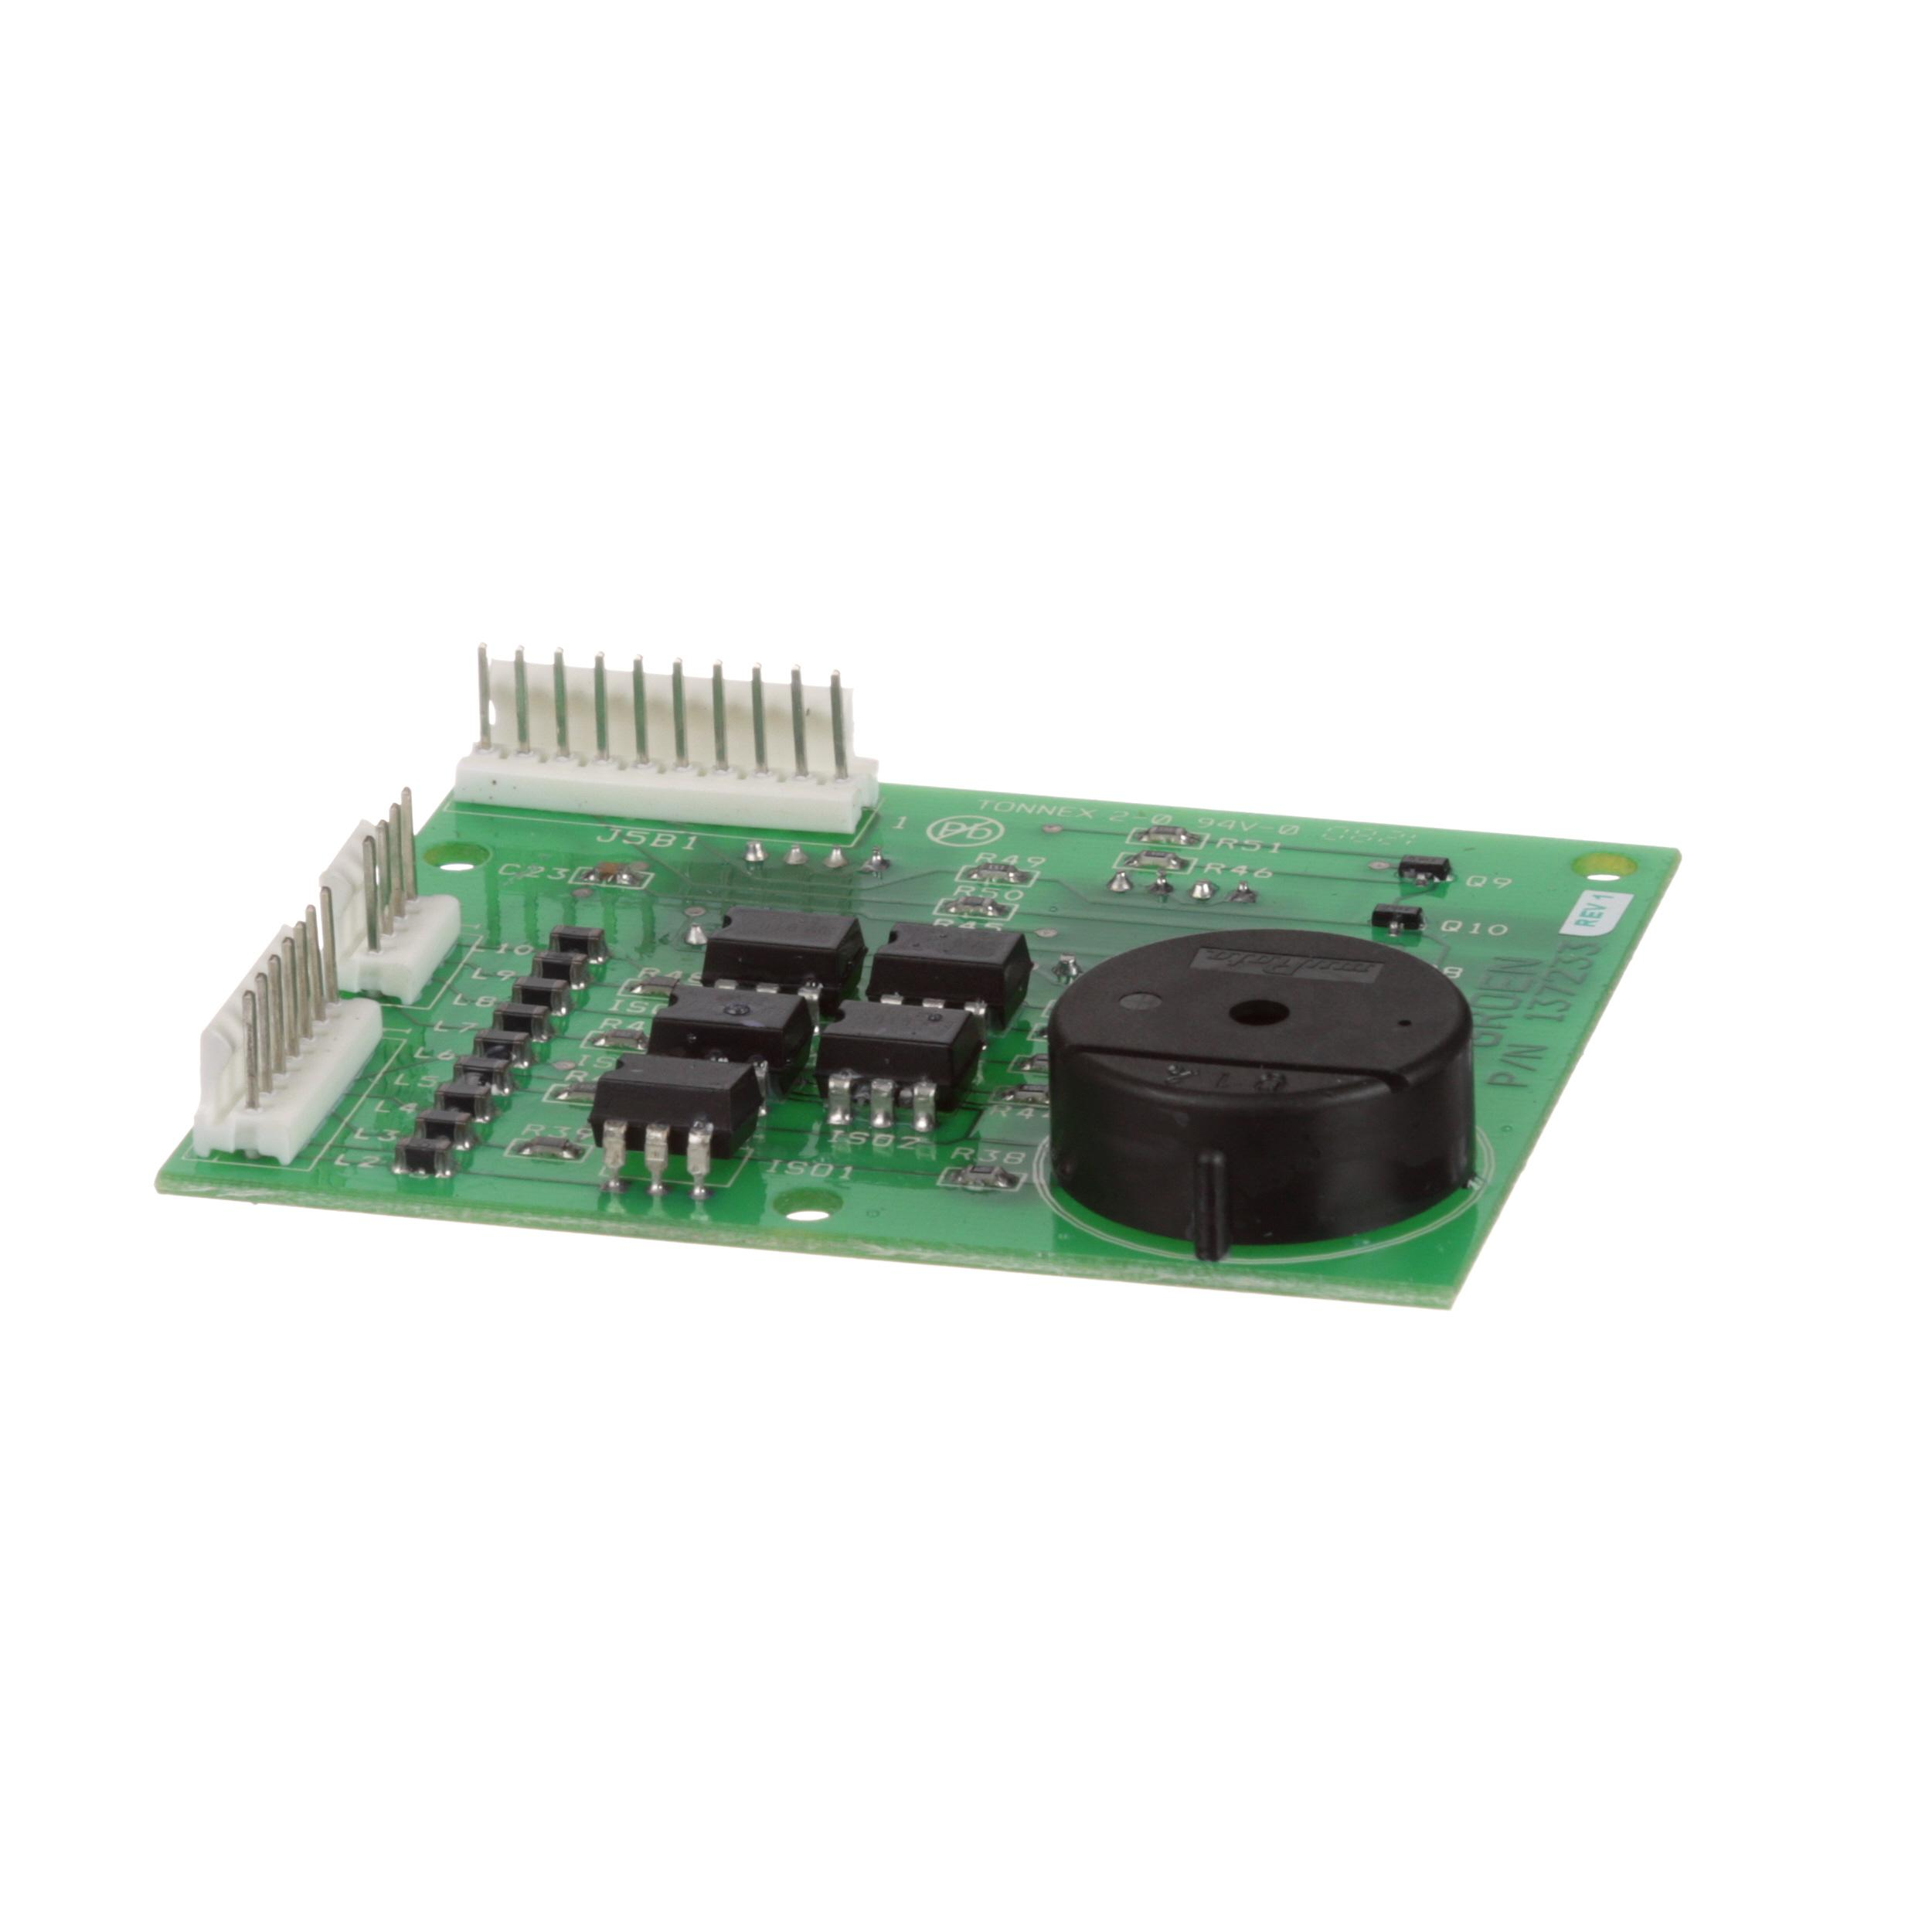 GROEN PC BOARD ASSY LGT & TIME